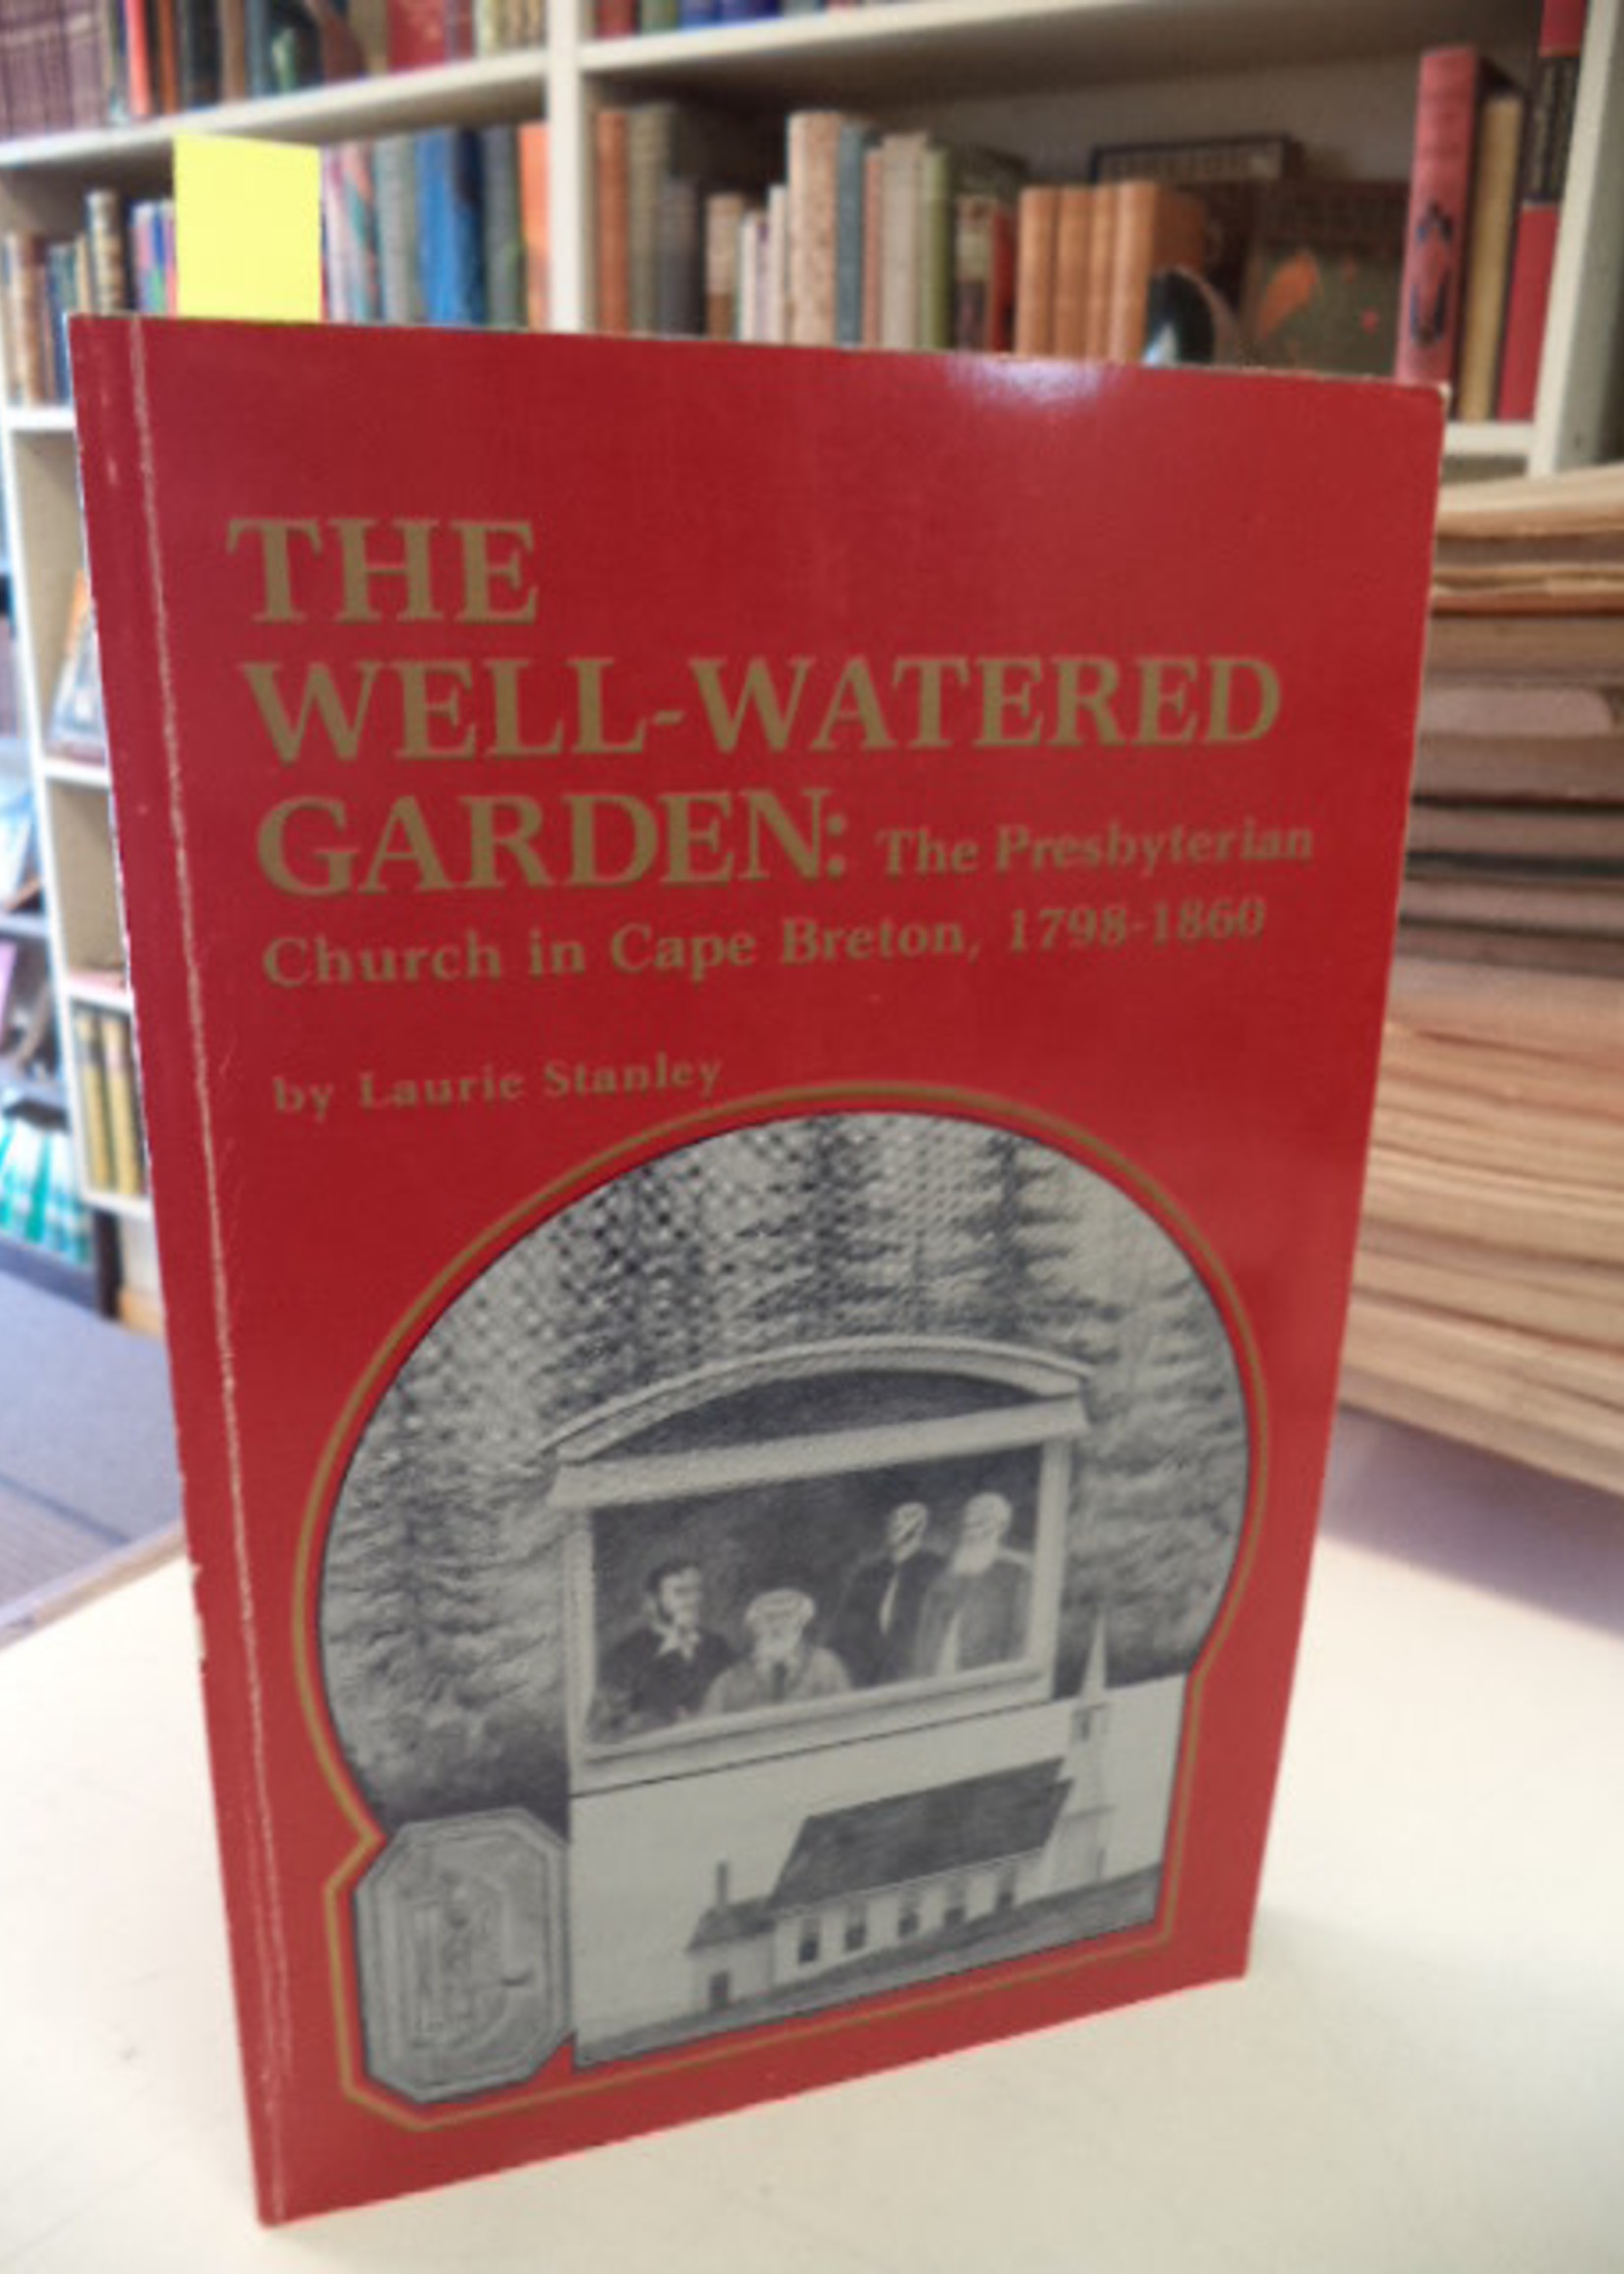 USED - The Well-Watered garden: The Presbyterian Church in Cape Breton, 1798-1860 by Laurie Stanley-Blackwell